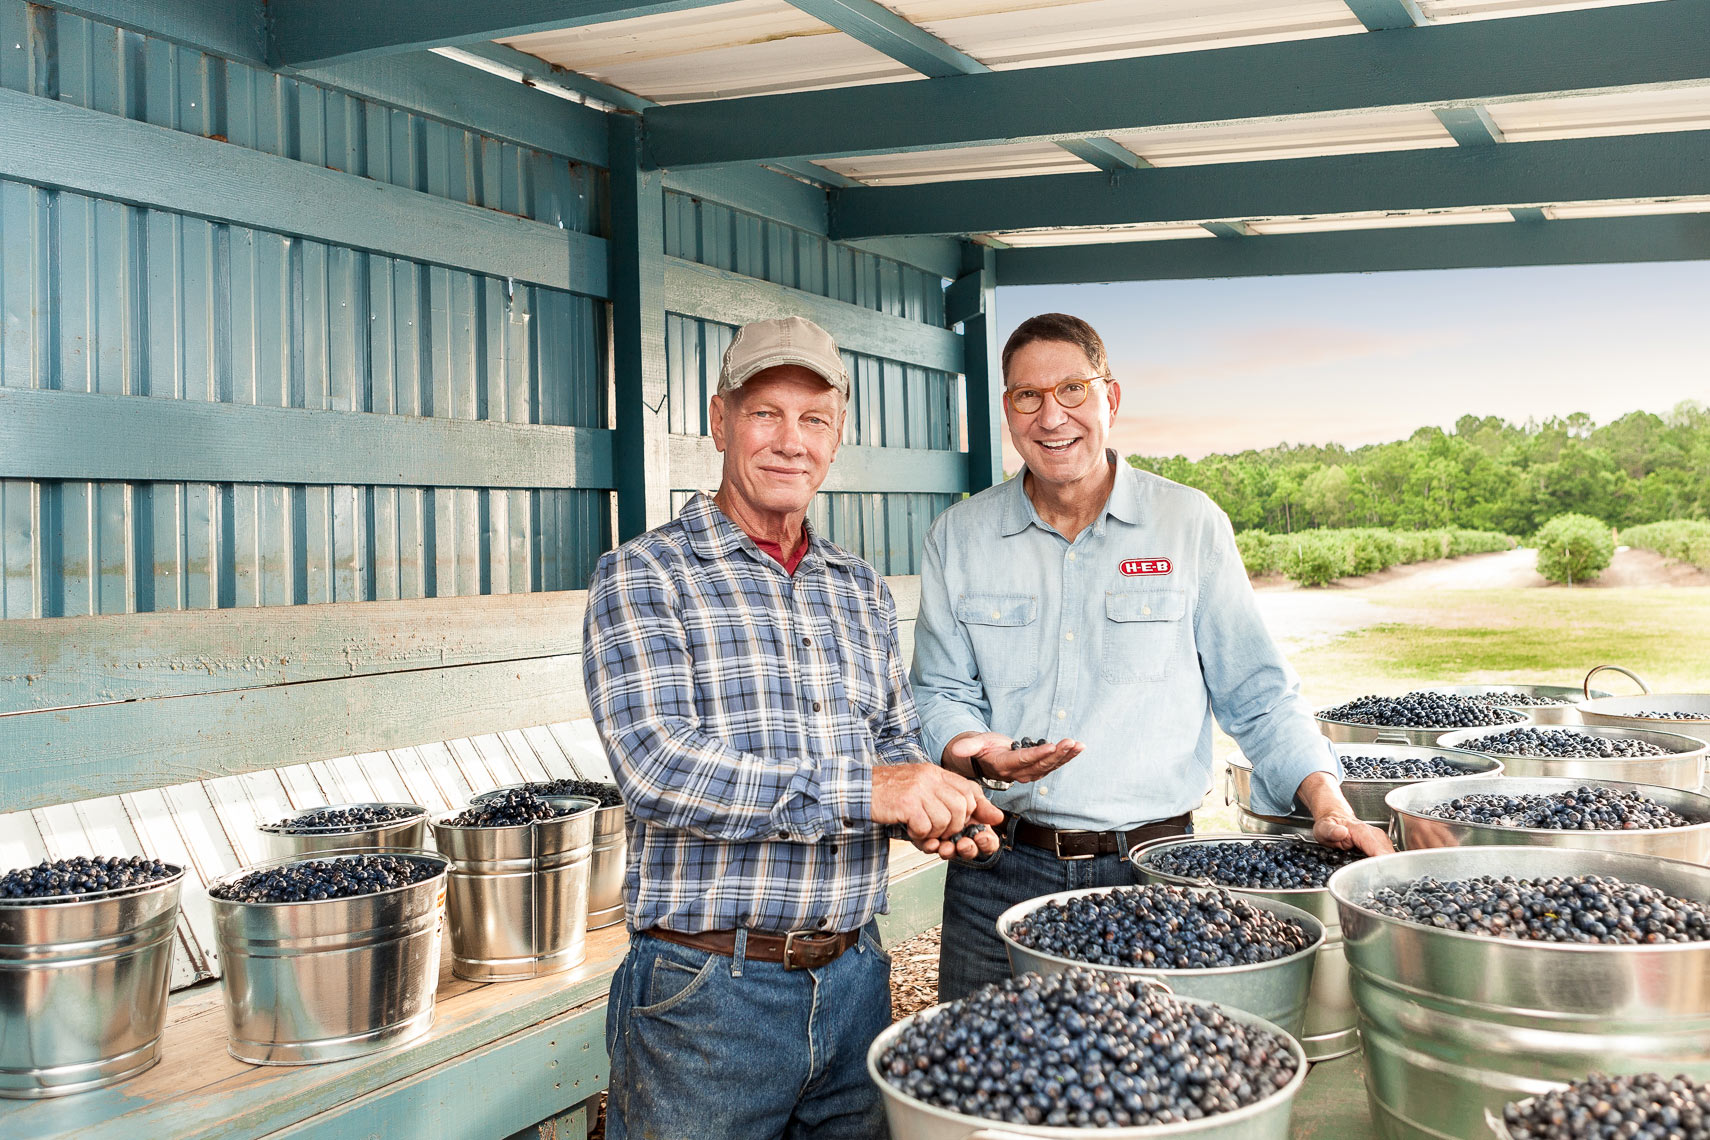 heb-blueberries-produce-department-jason-risner-photography-8707